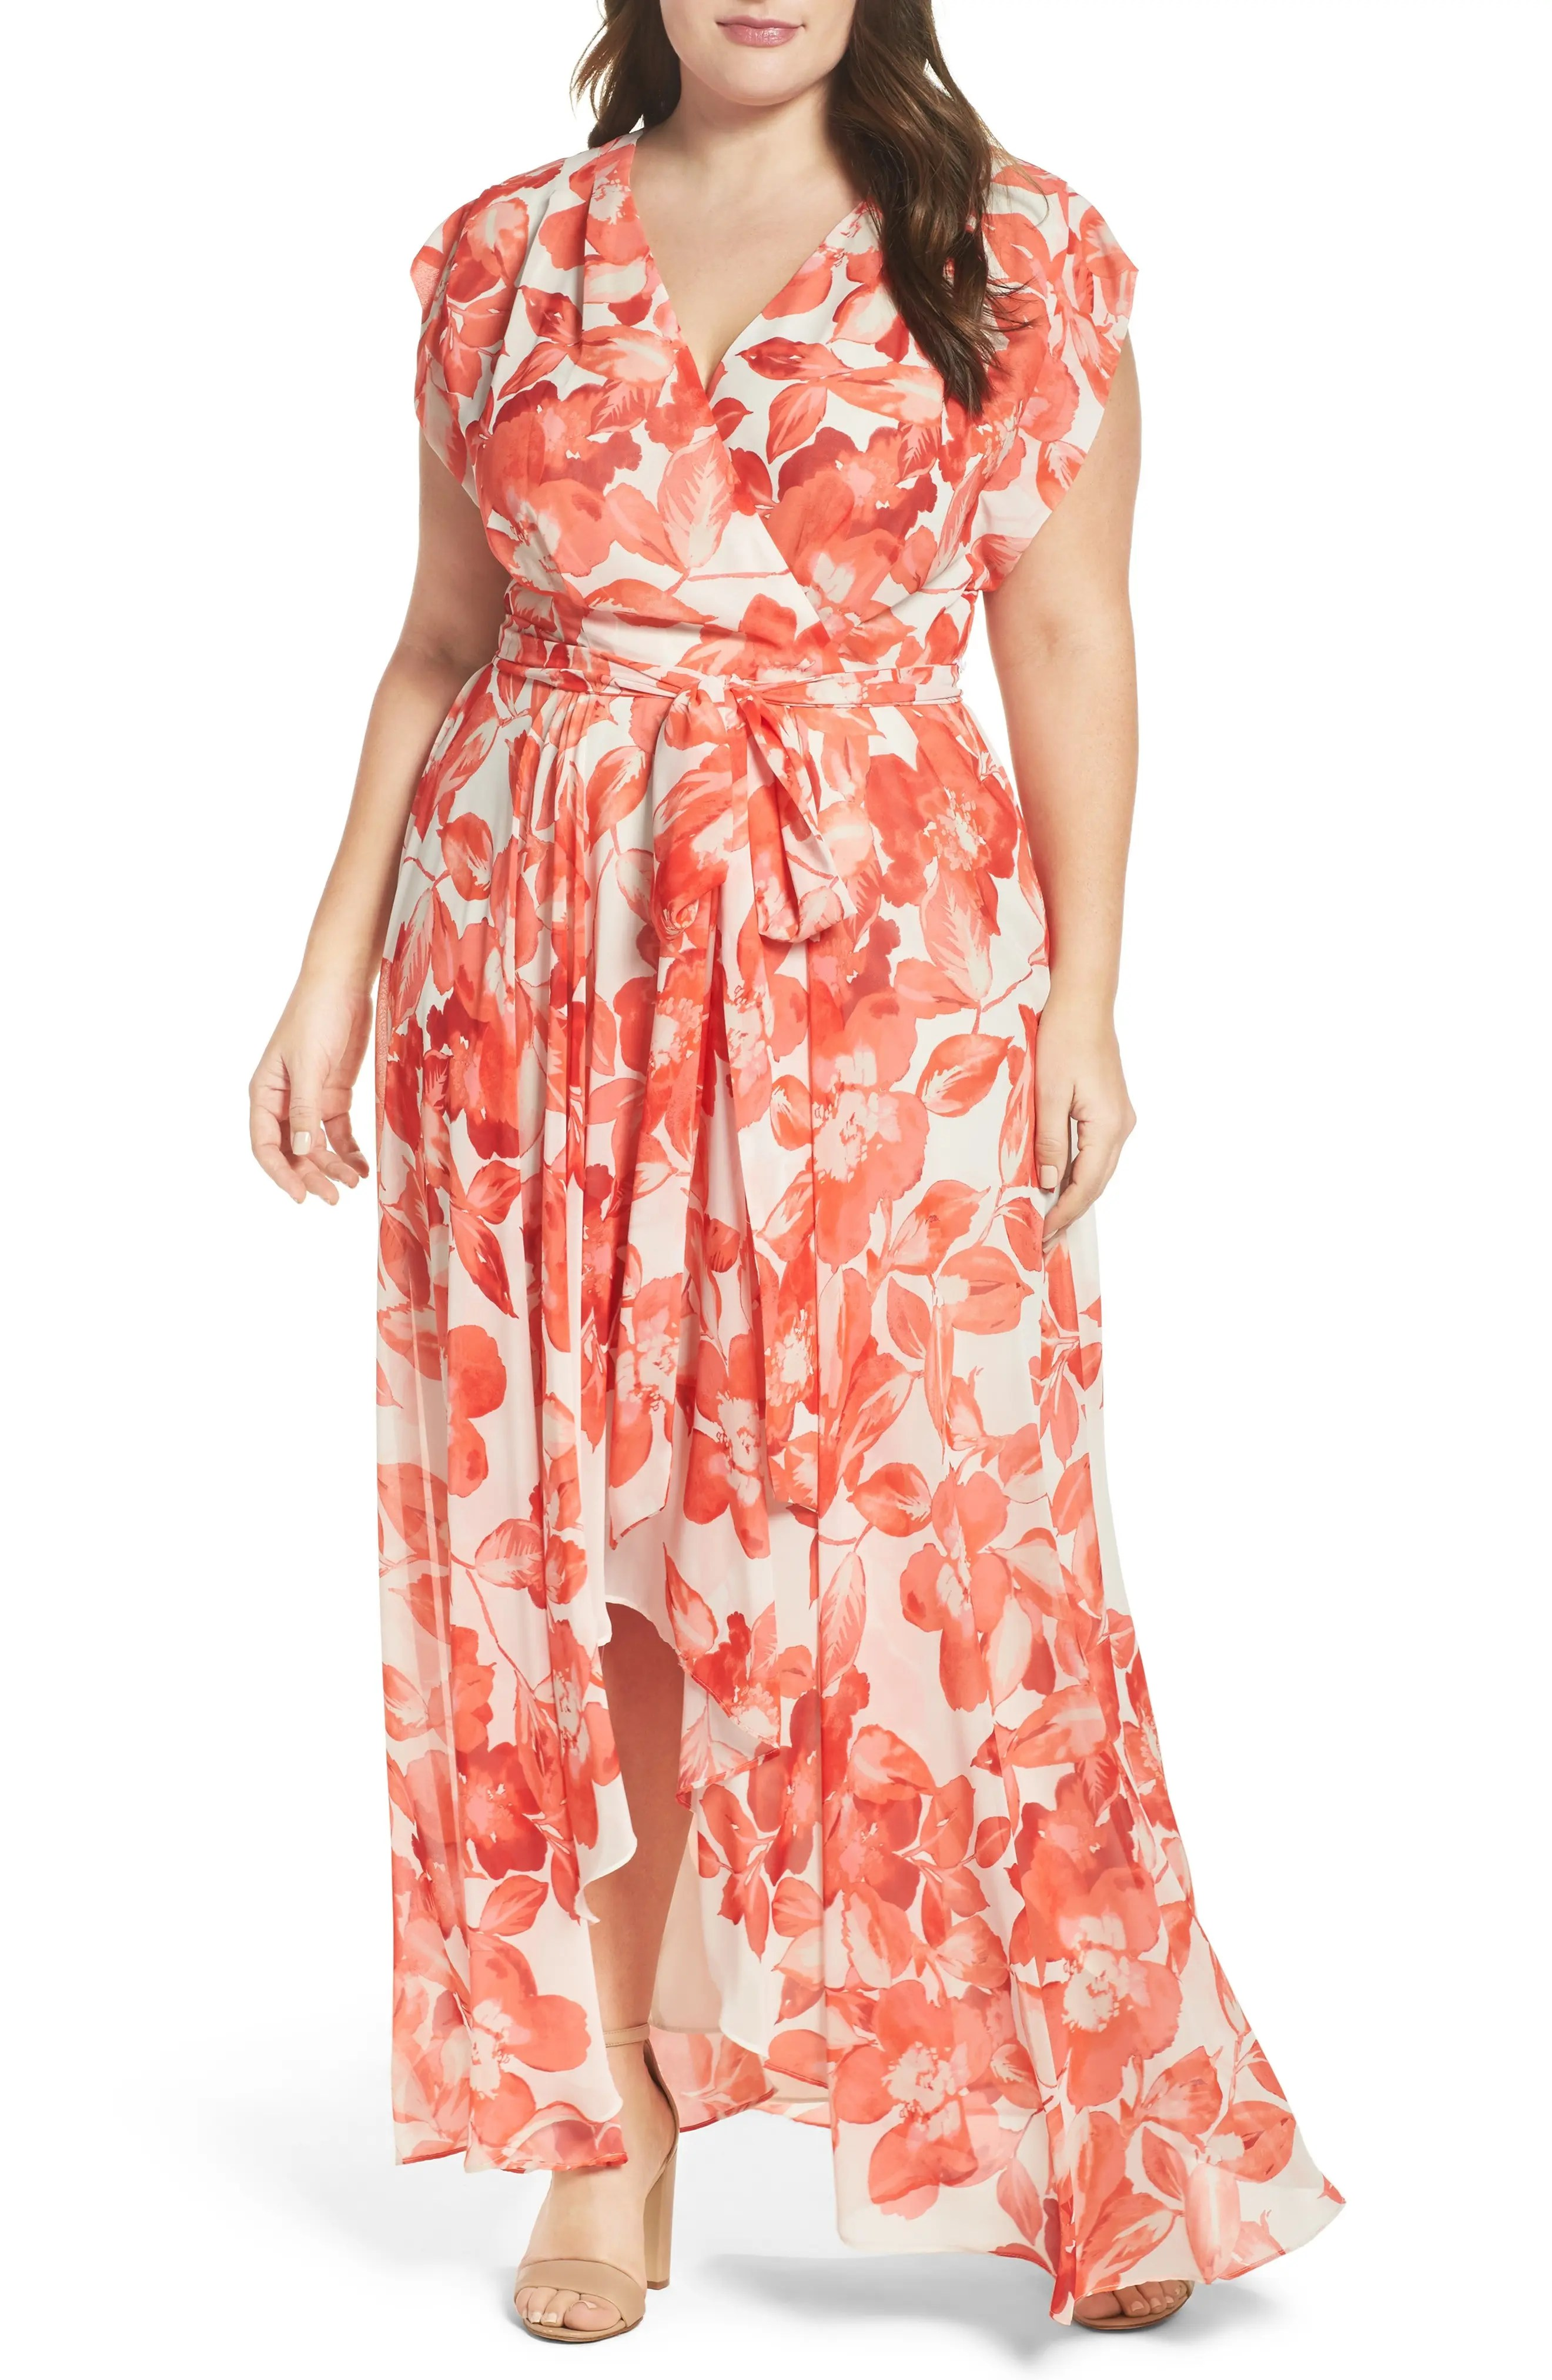 Eliza  floral chiffon high low maxi dress plus size also clothing for women nordstrom rh shoprdstrom